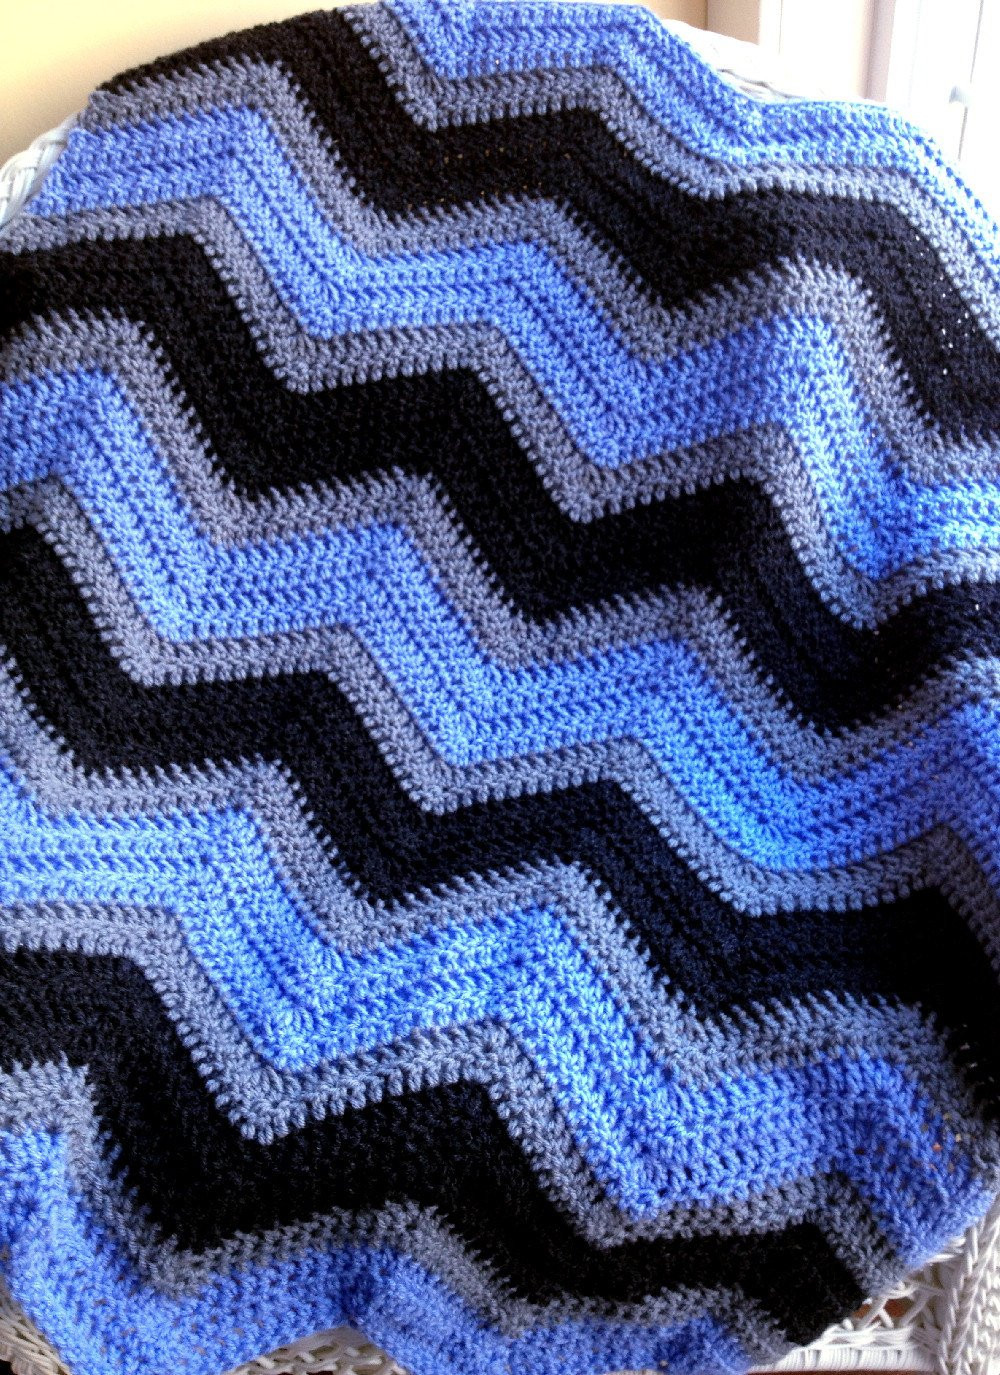 Chevron Crochet Afghan Luxury Chevron Zig Zag Baby Blanket Afghan Wrap Crochet Knit Photo Of Charming 41 Models Chevron Crochet Afghan